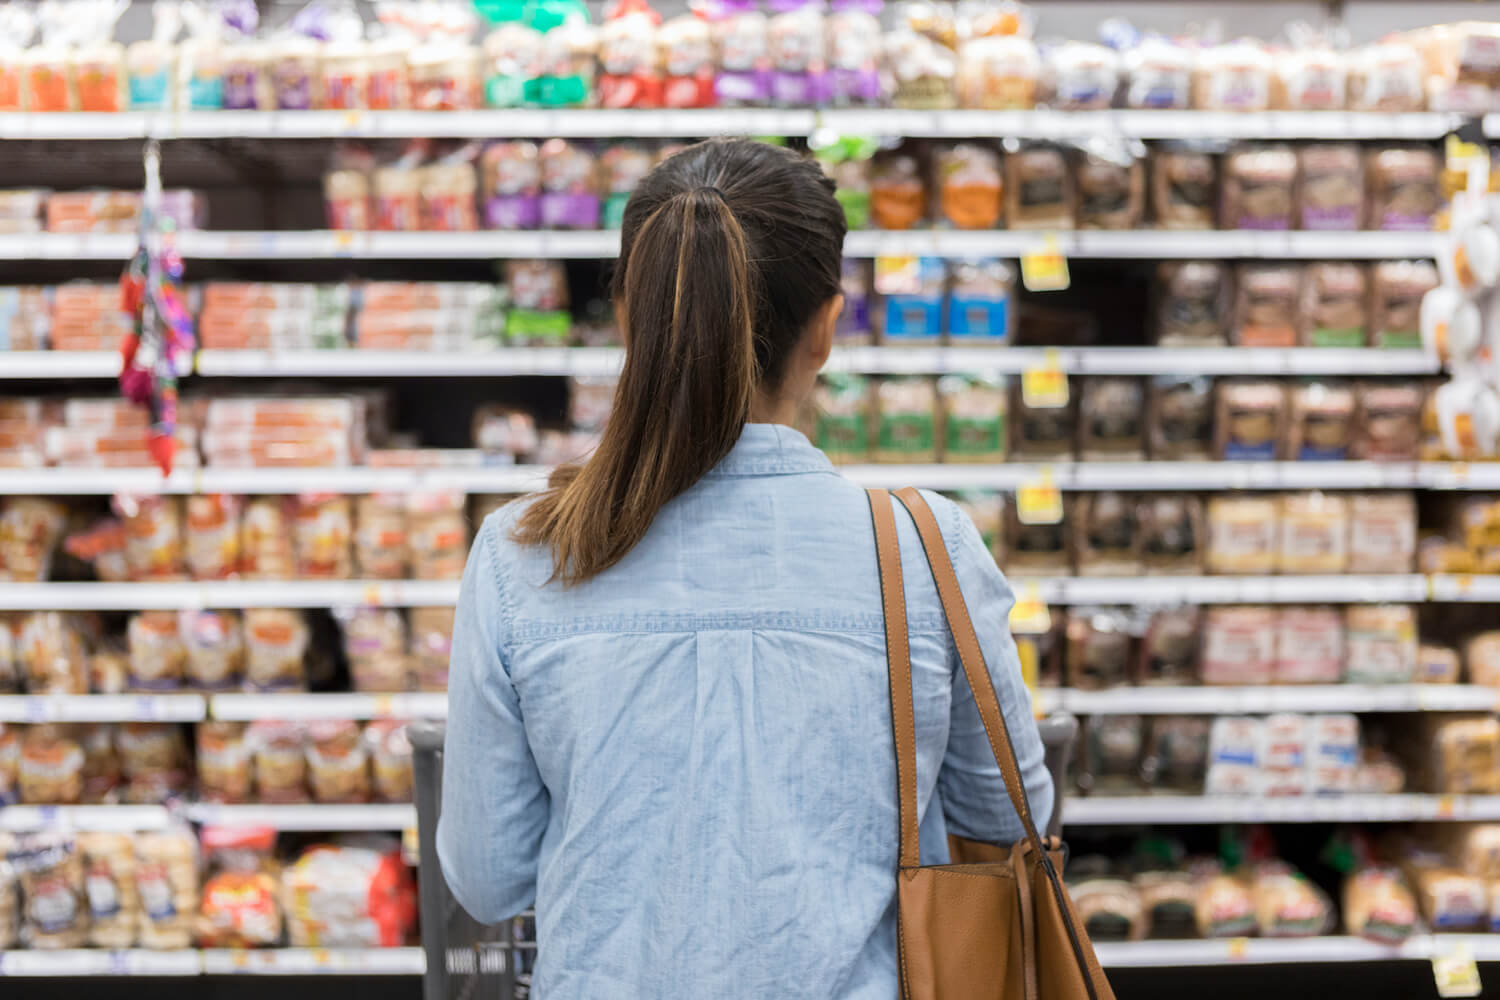 Back of a woman shopping in a grocery store looking at an aisle of bread. October 2020